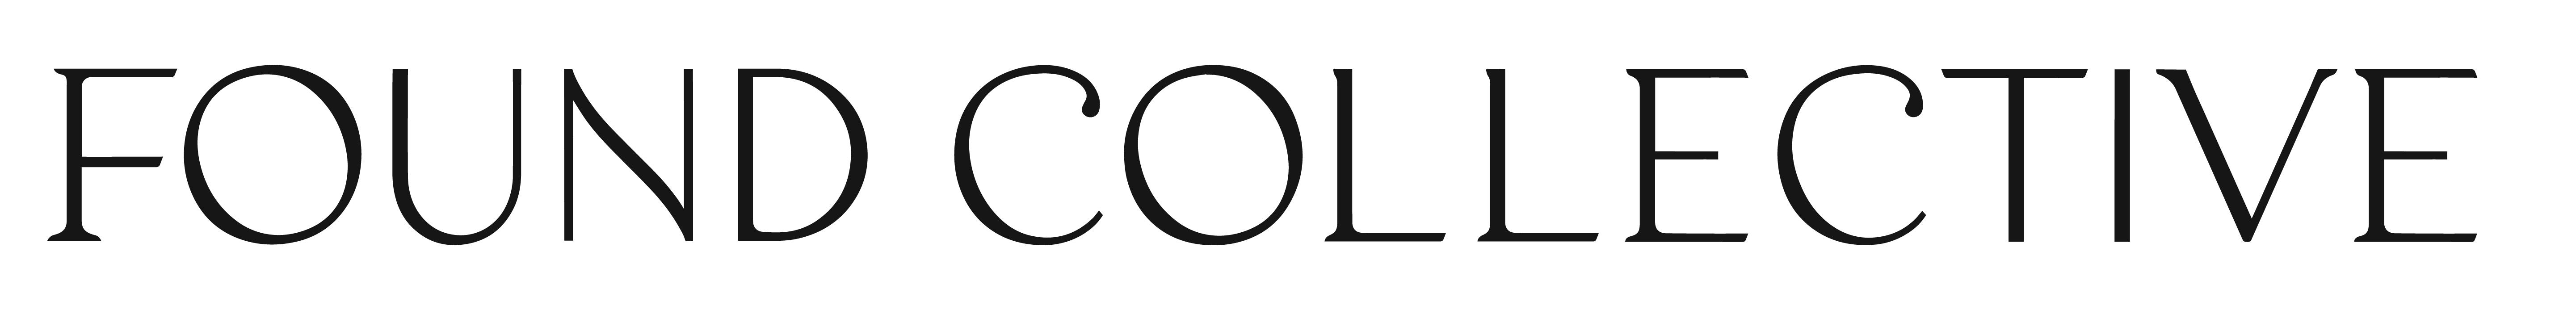 found-collective-primary-logo